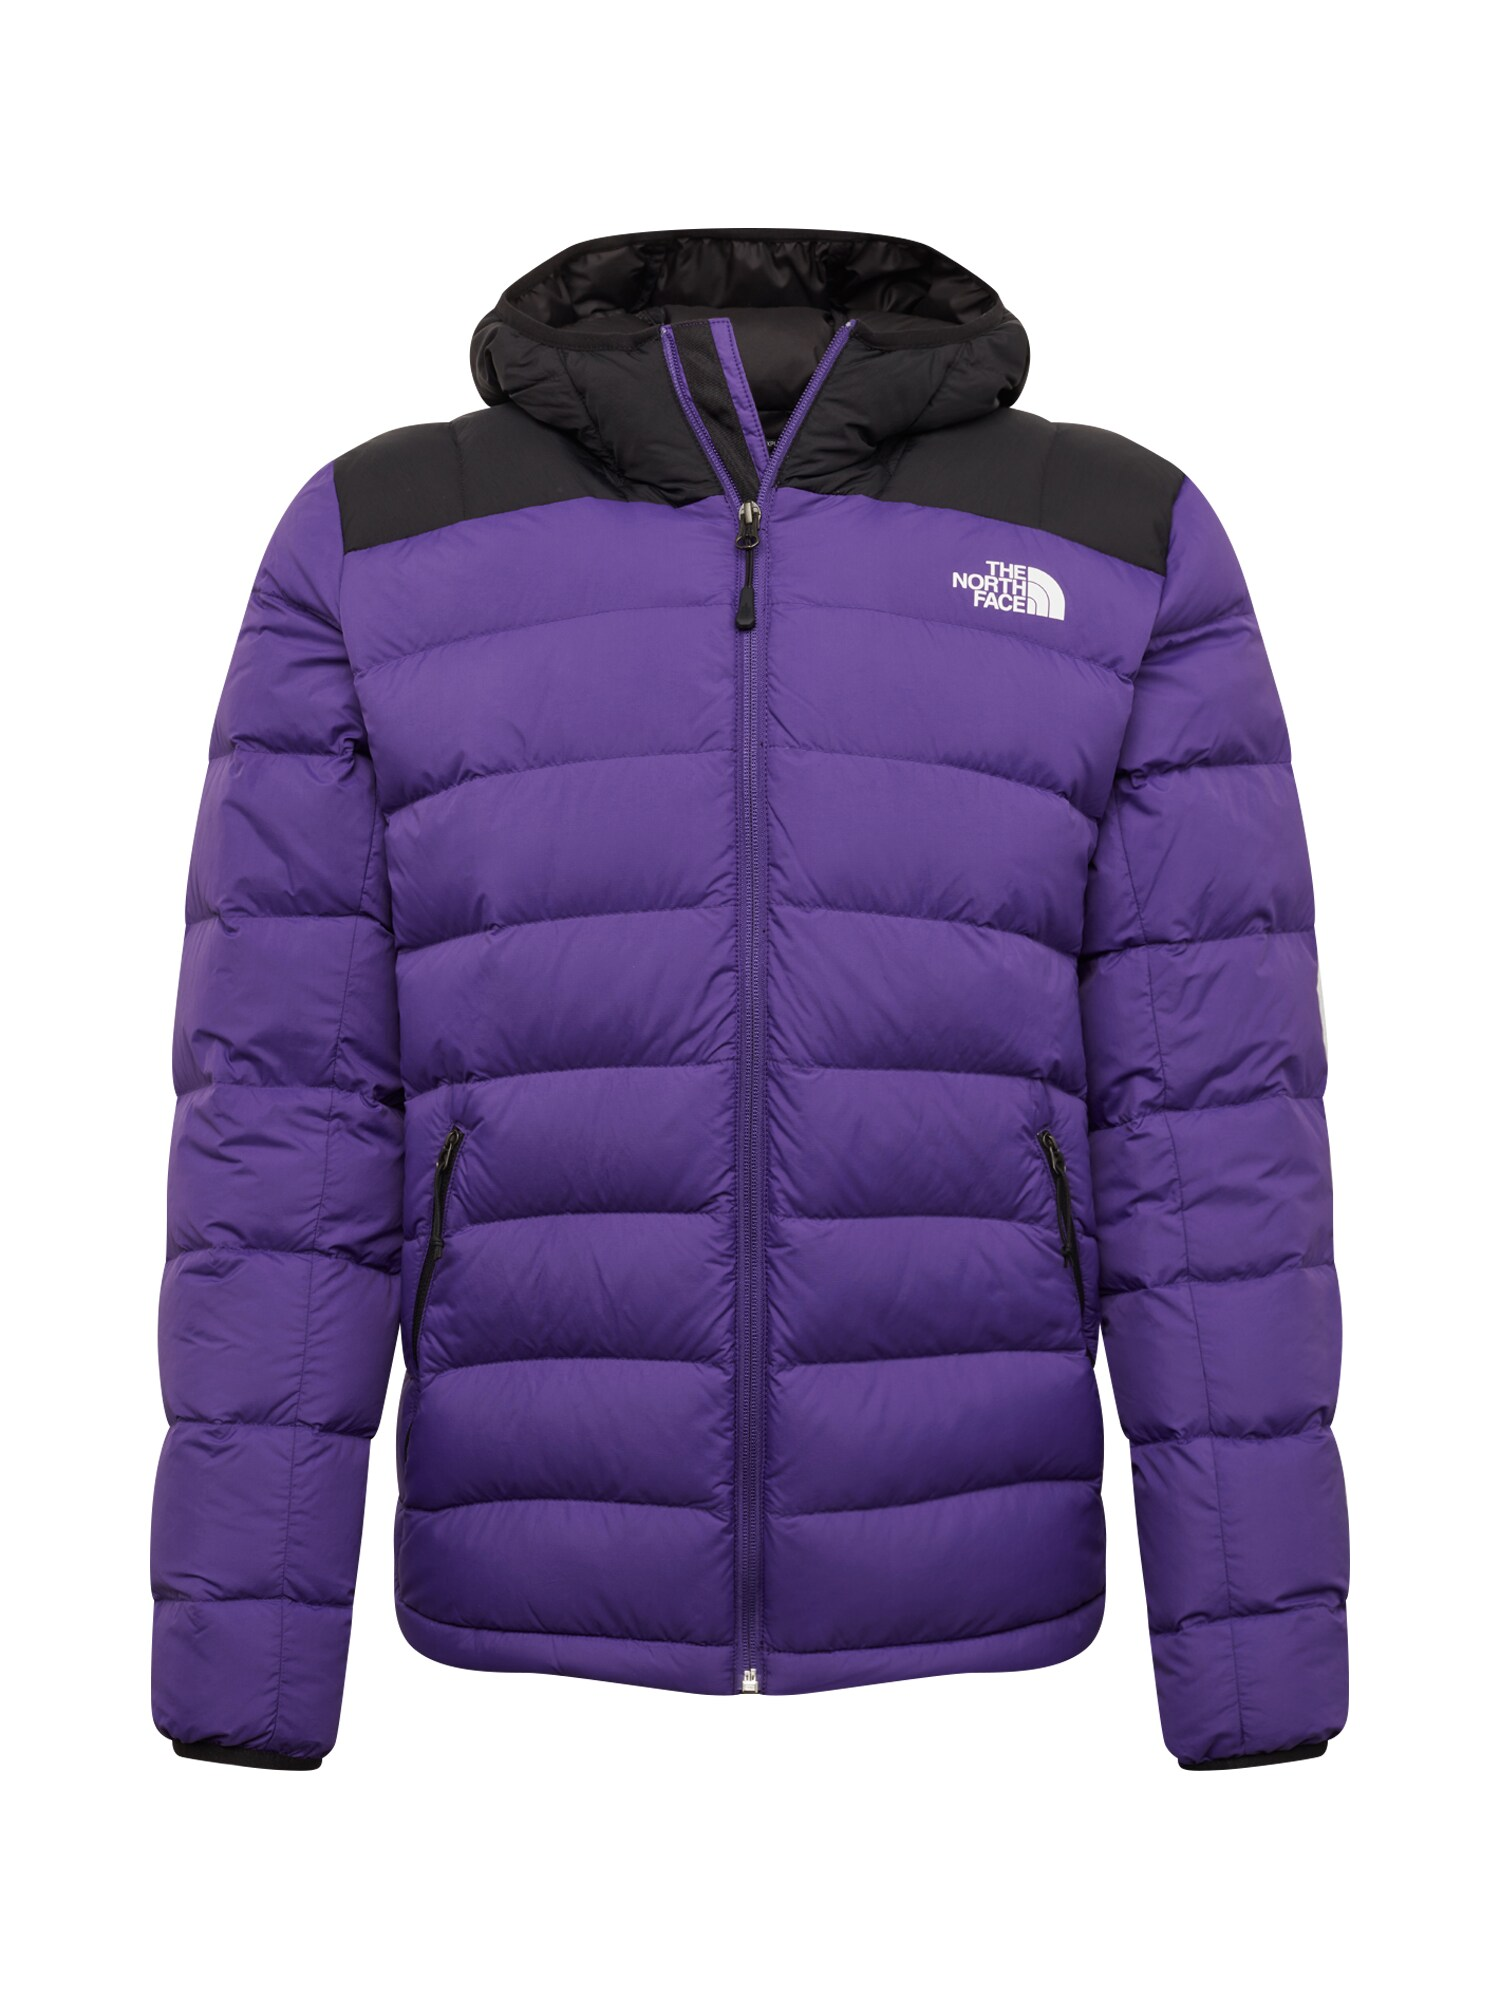 THE NORTH FACE Funkční bunda M LA PAZ HOODED JKT fialová černá The North Face